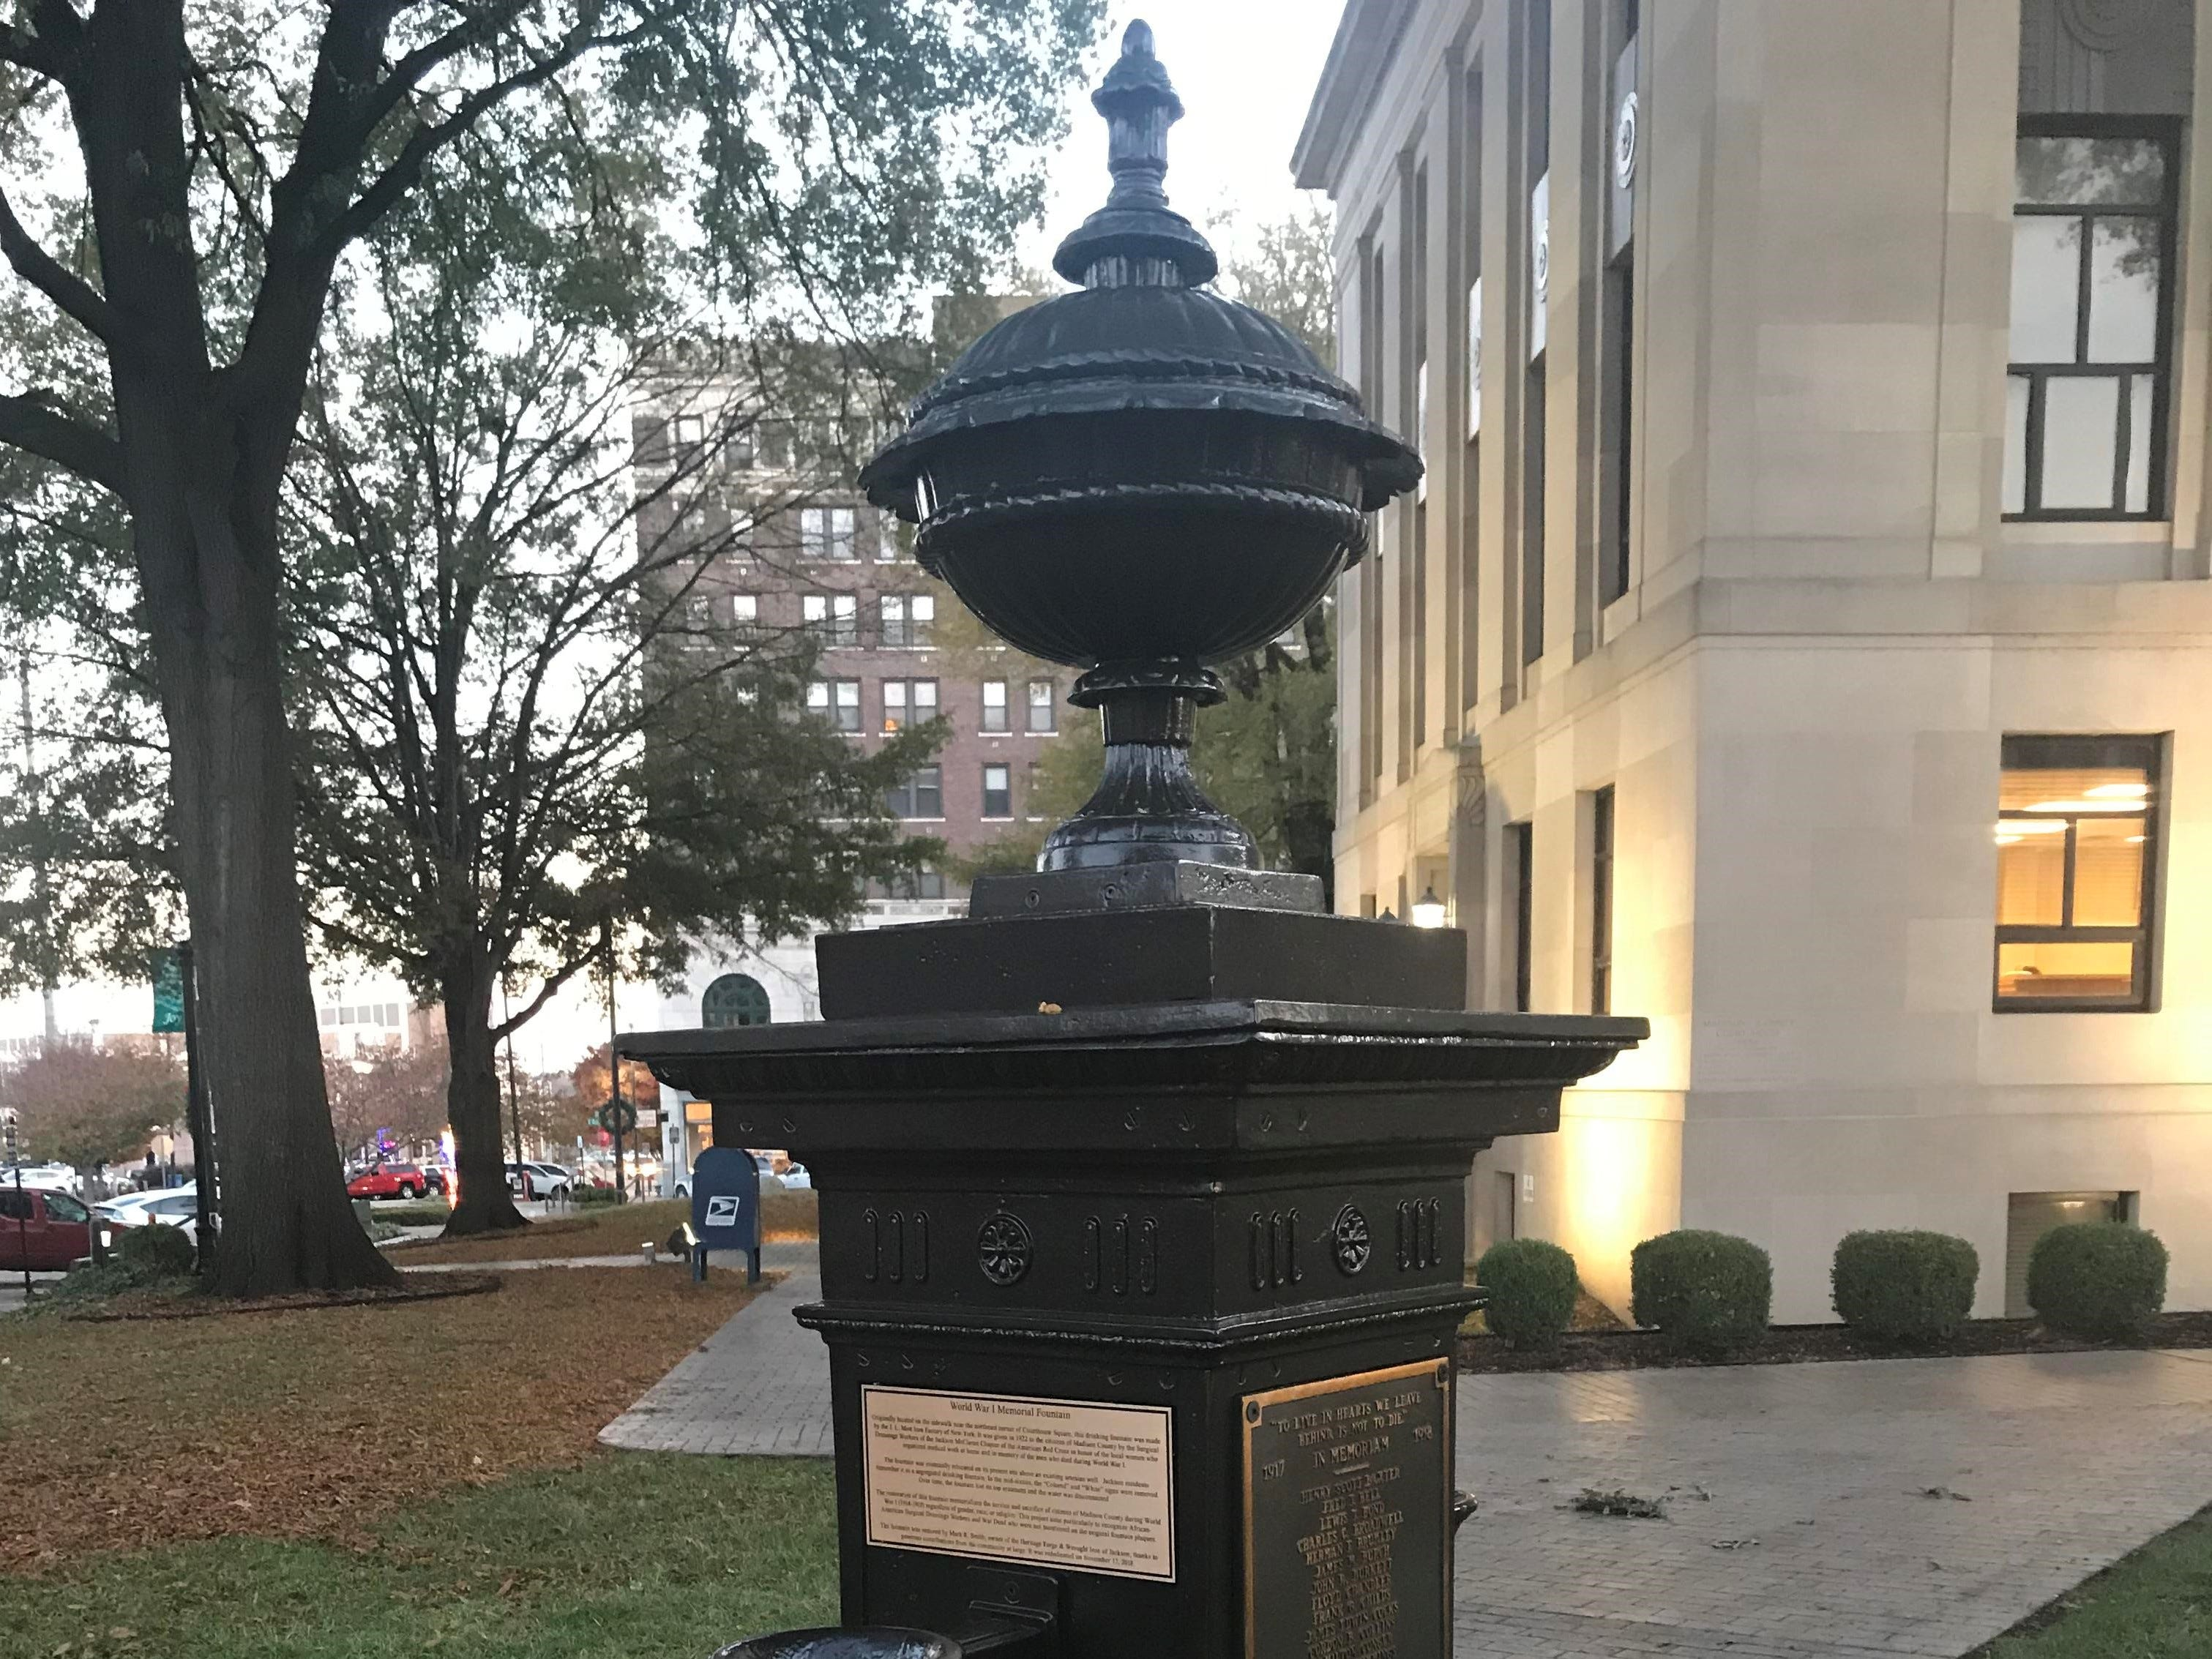 WWI fountain restoration aims to unify community, right past wrongs